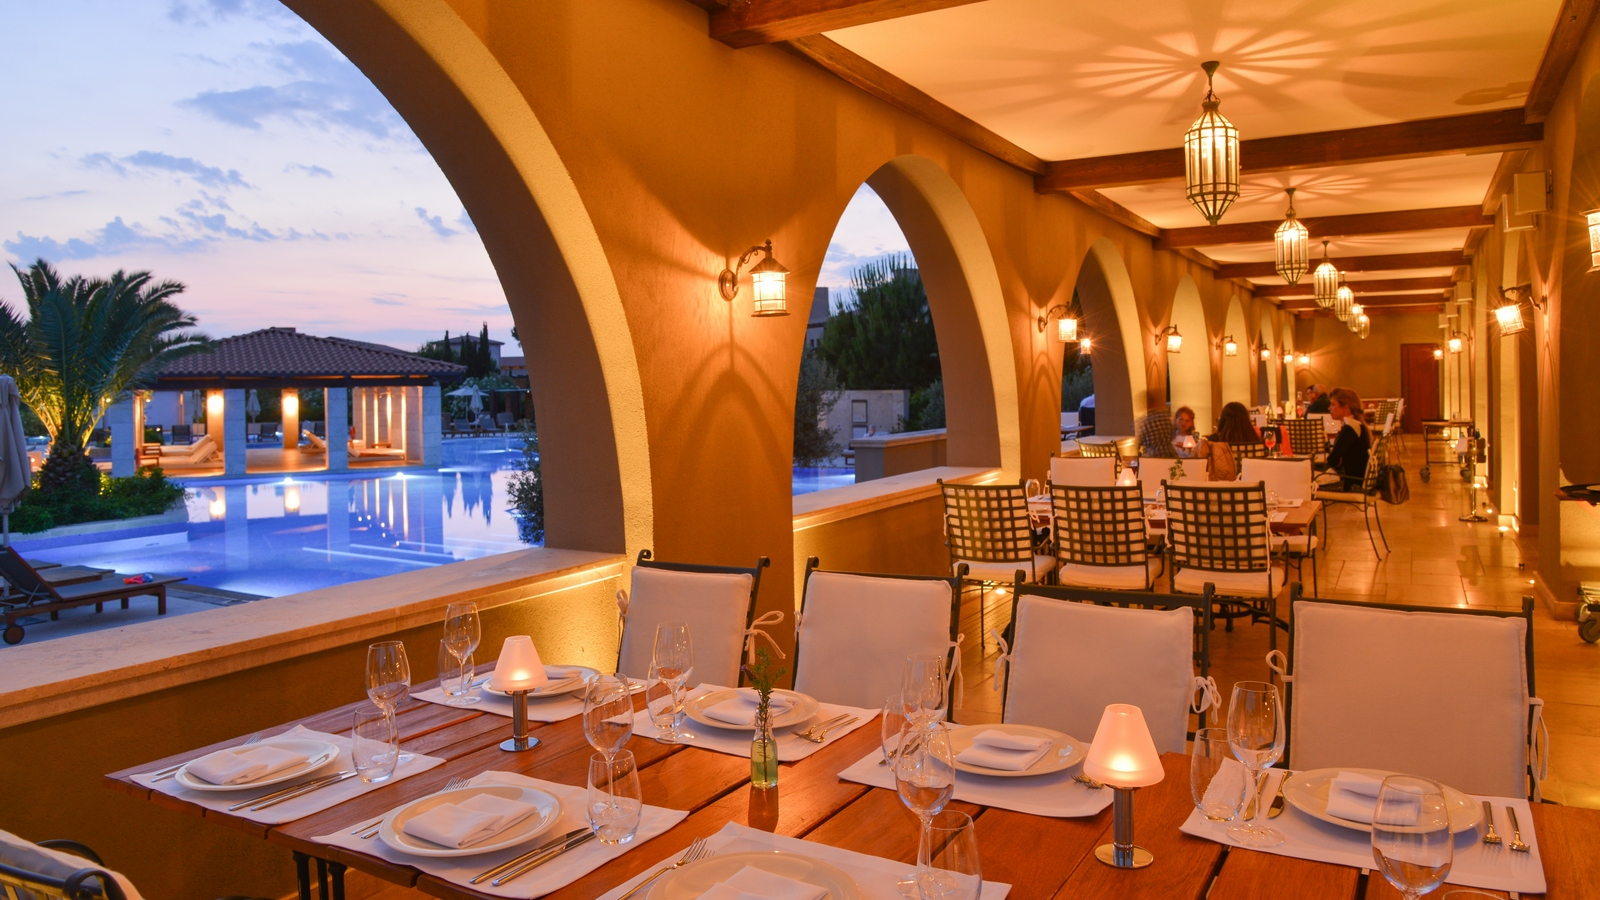 Passion for luxury the westin costa navarino an idyllic for Passion fish restaurant